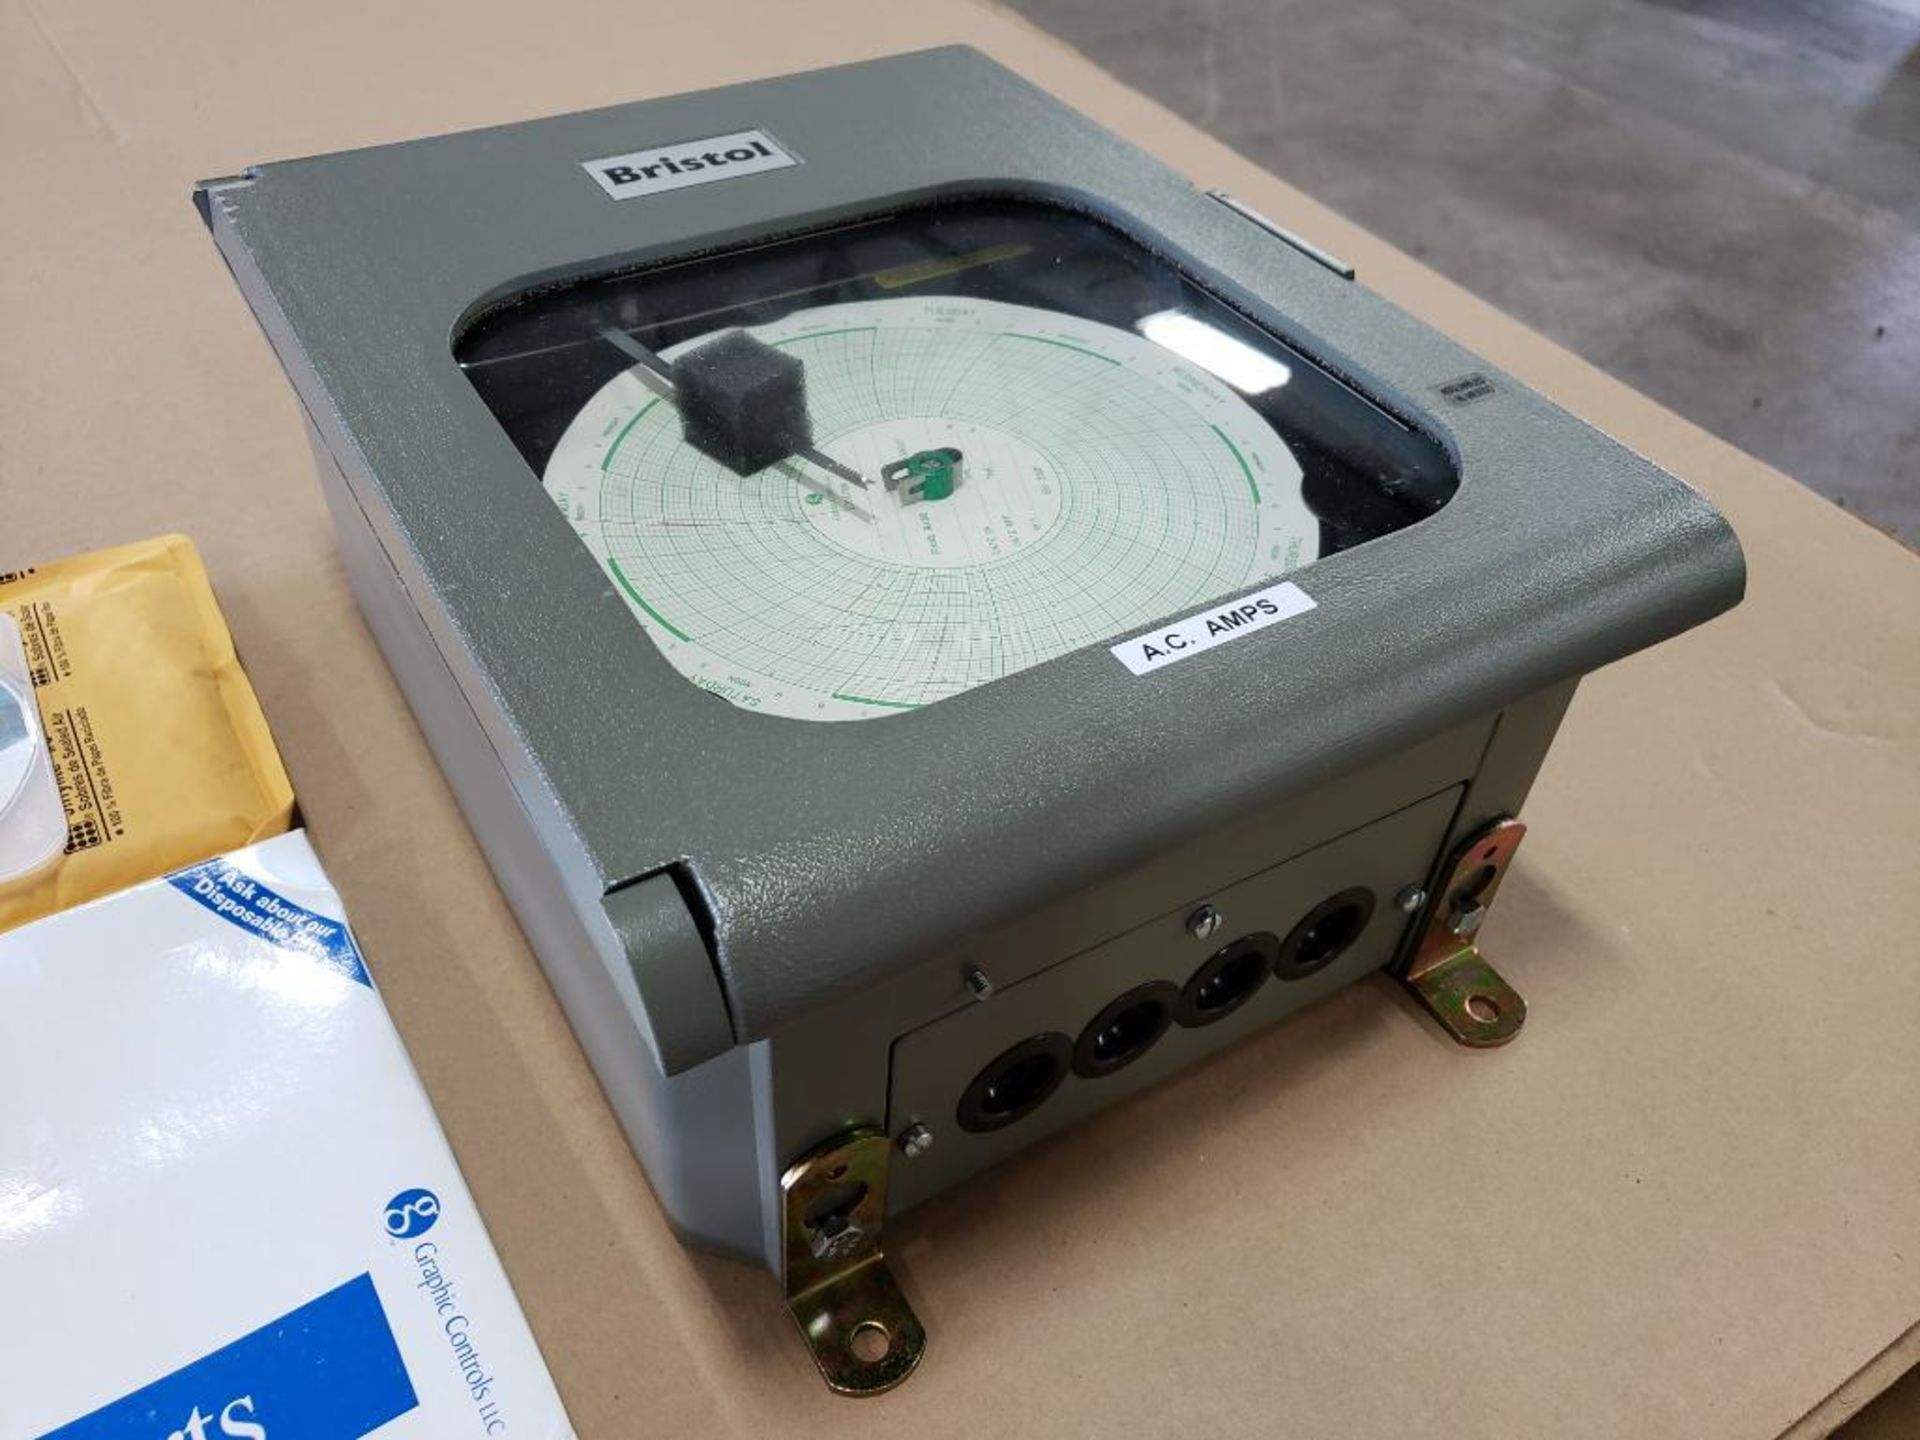 Qty 2 - Emerson Controls Bristol AC Amp chart recorder. Part number 410887B02. New in box. - Image 5 of 5